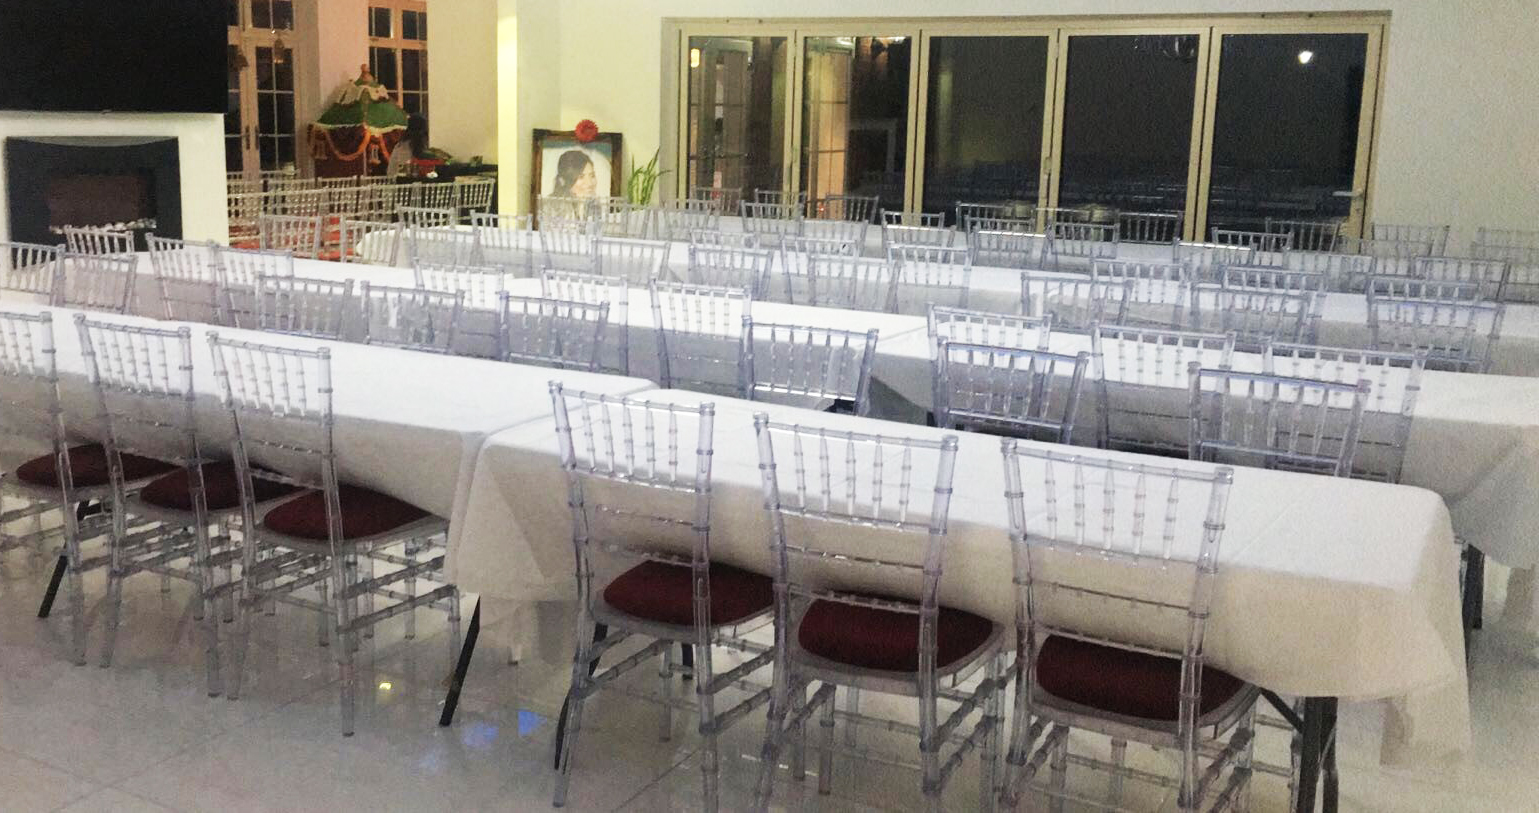 Crystal Resin Chiavari Chairs ready for function - BE Event Hire